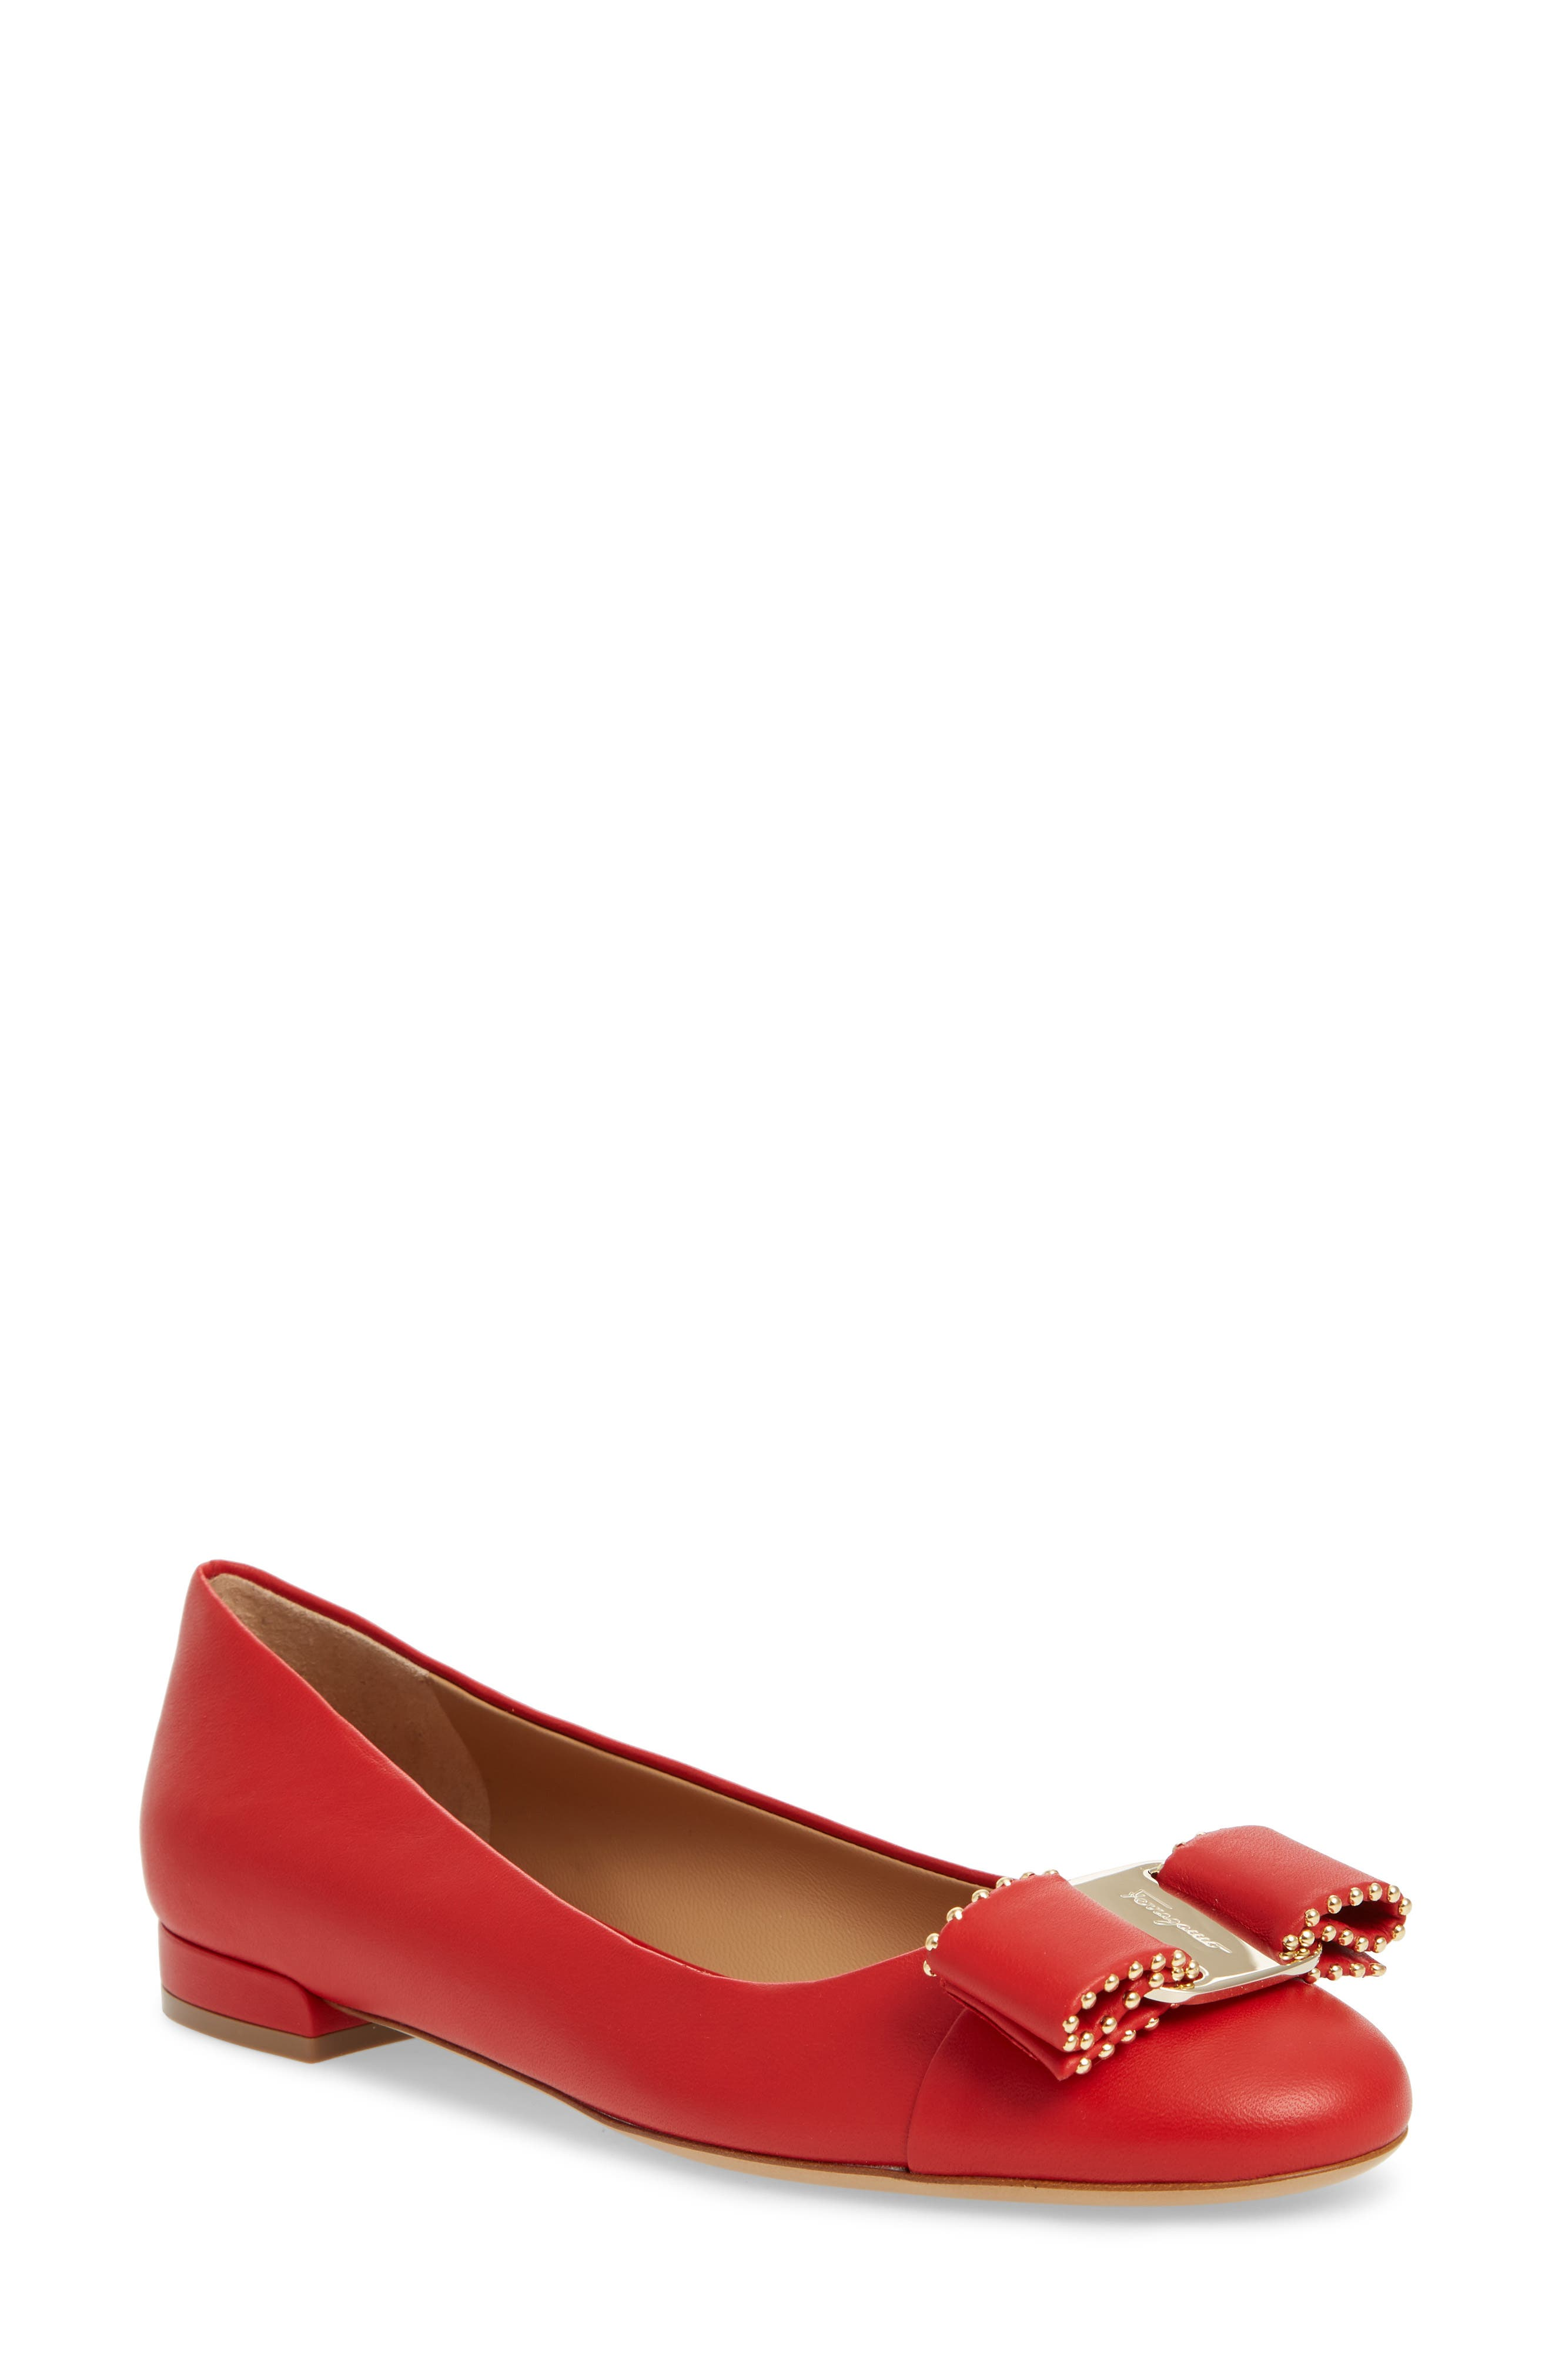 Salvatore Ferragamo Varina Leather Flat (Women)